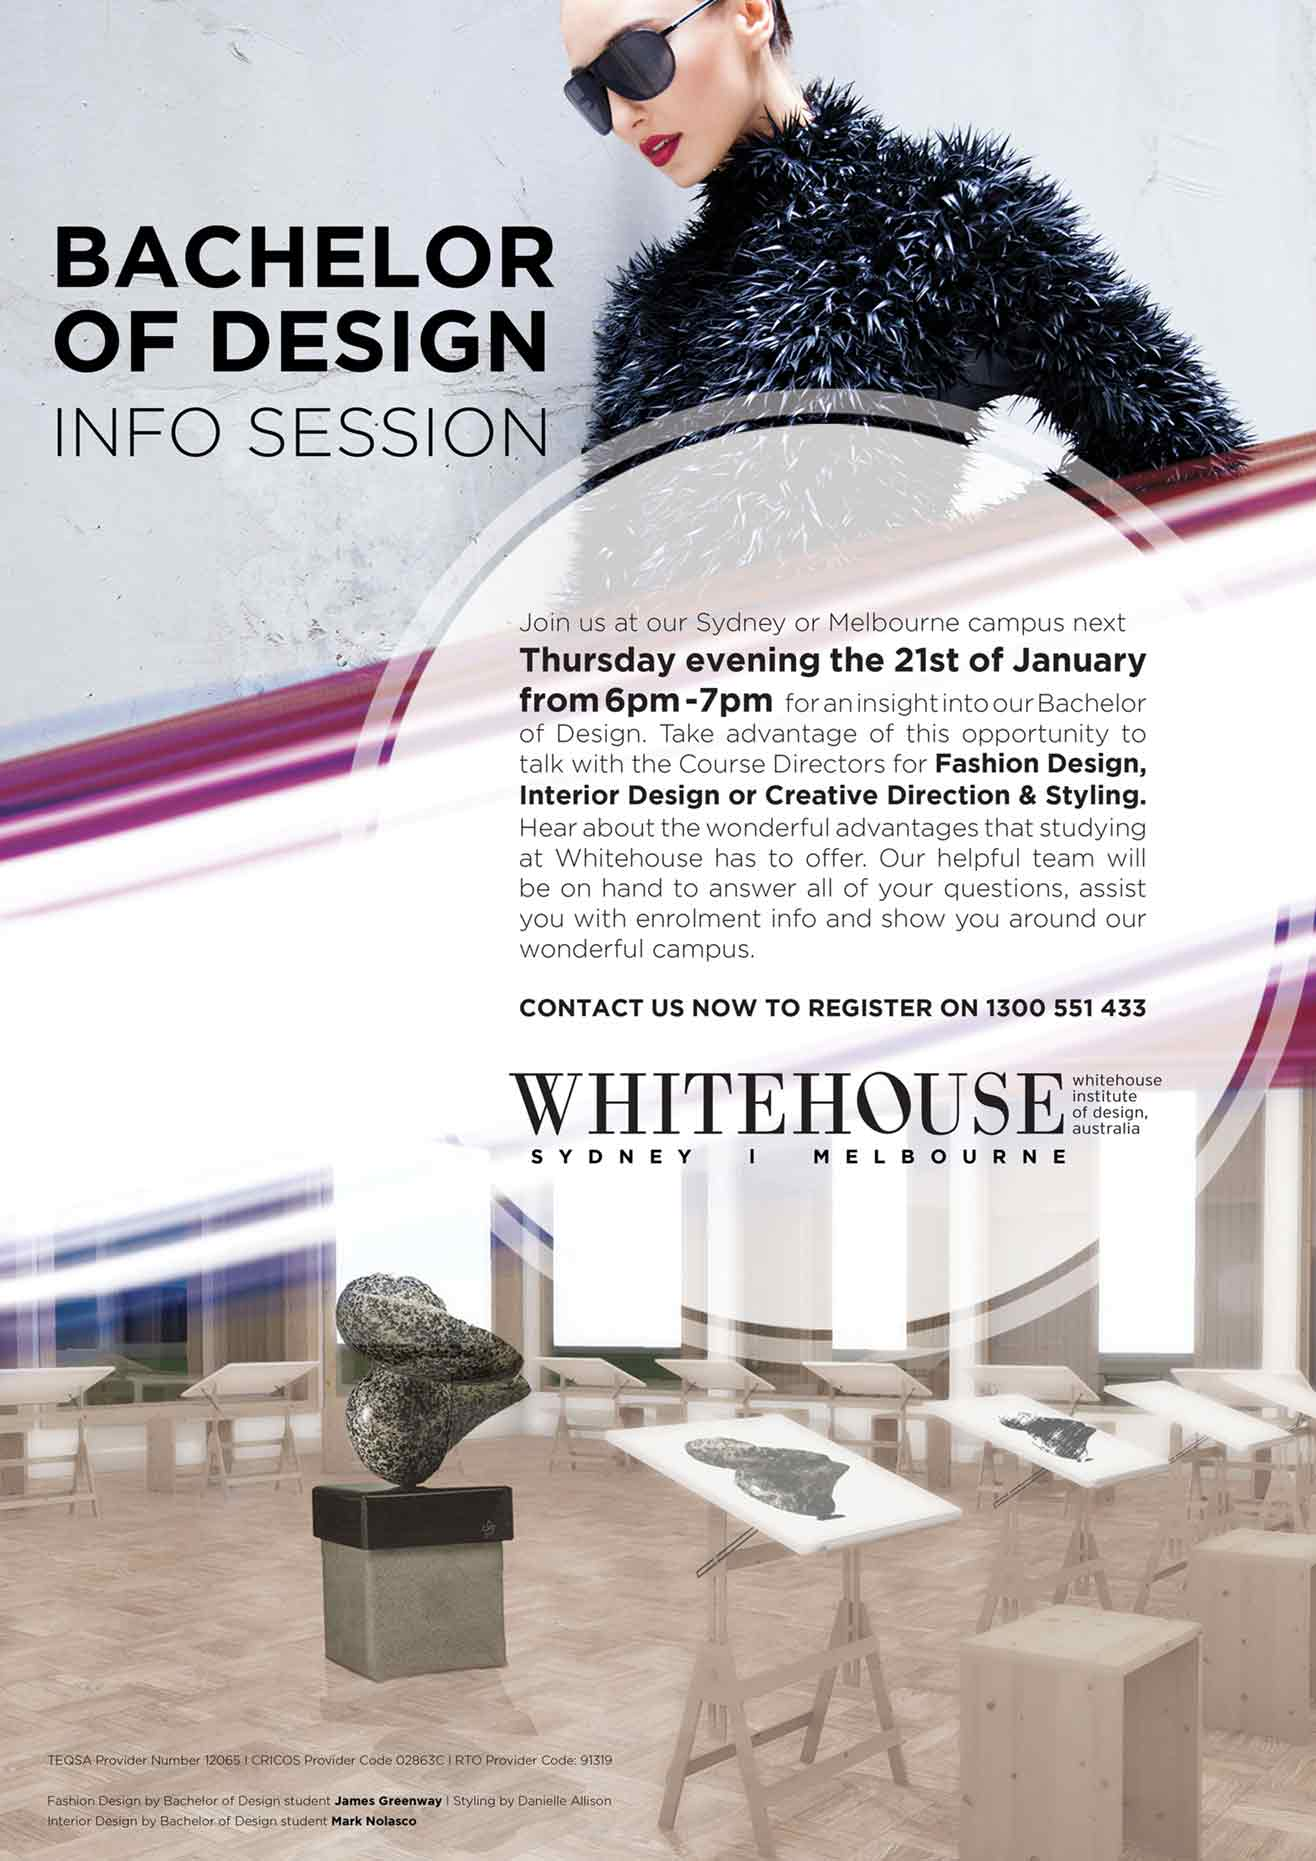 Want to be a fashion designer? Whitehouse is holding info sessions